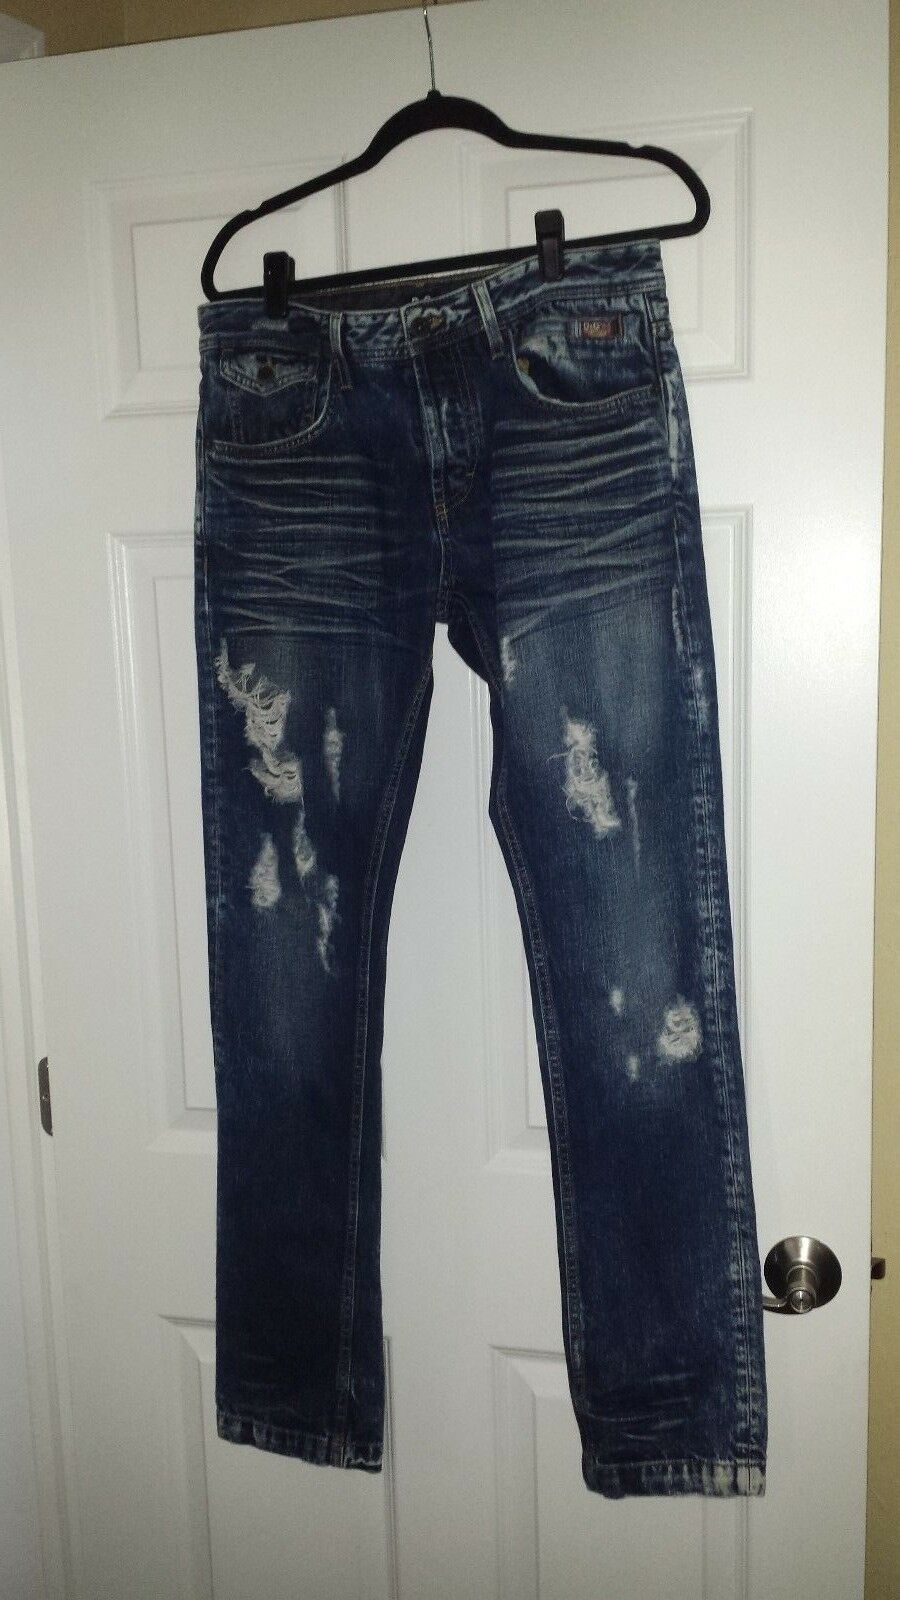 D&G Men's Distressed Denim Jeans